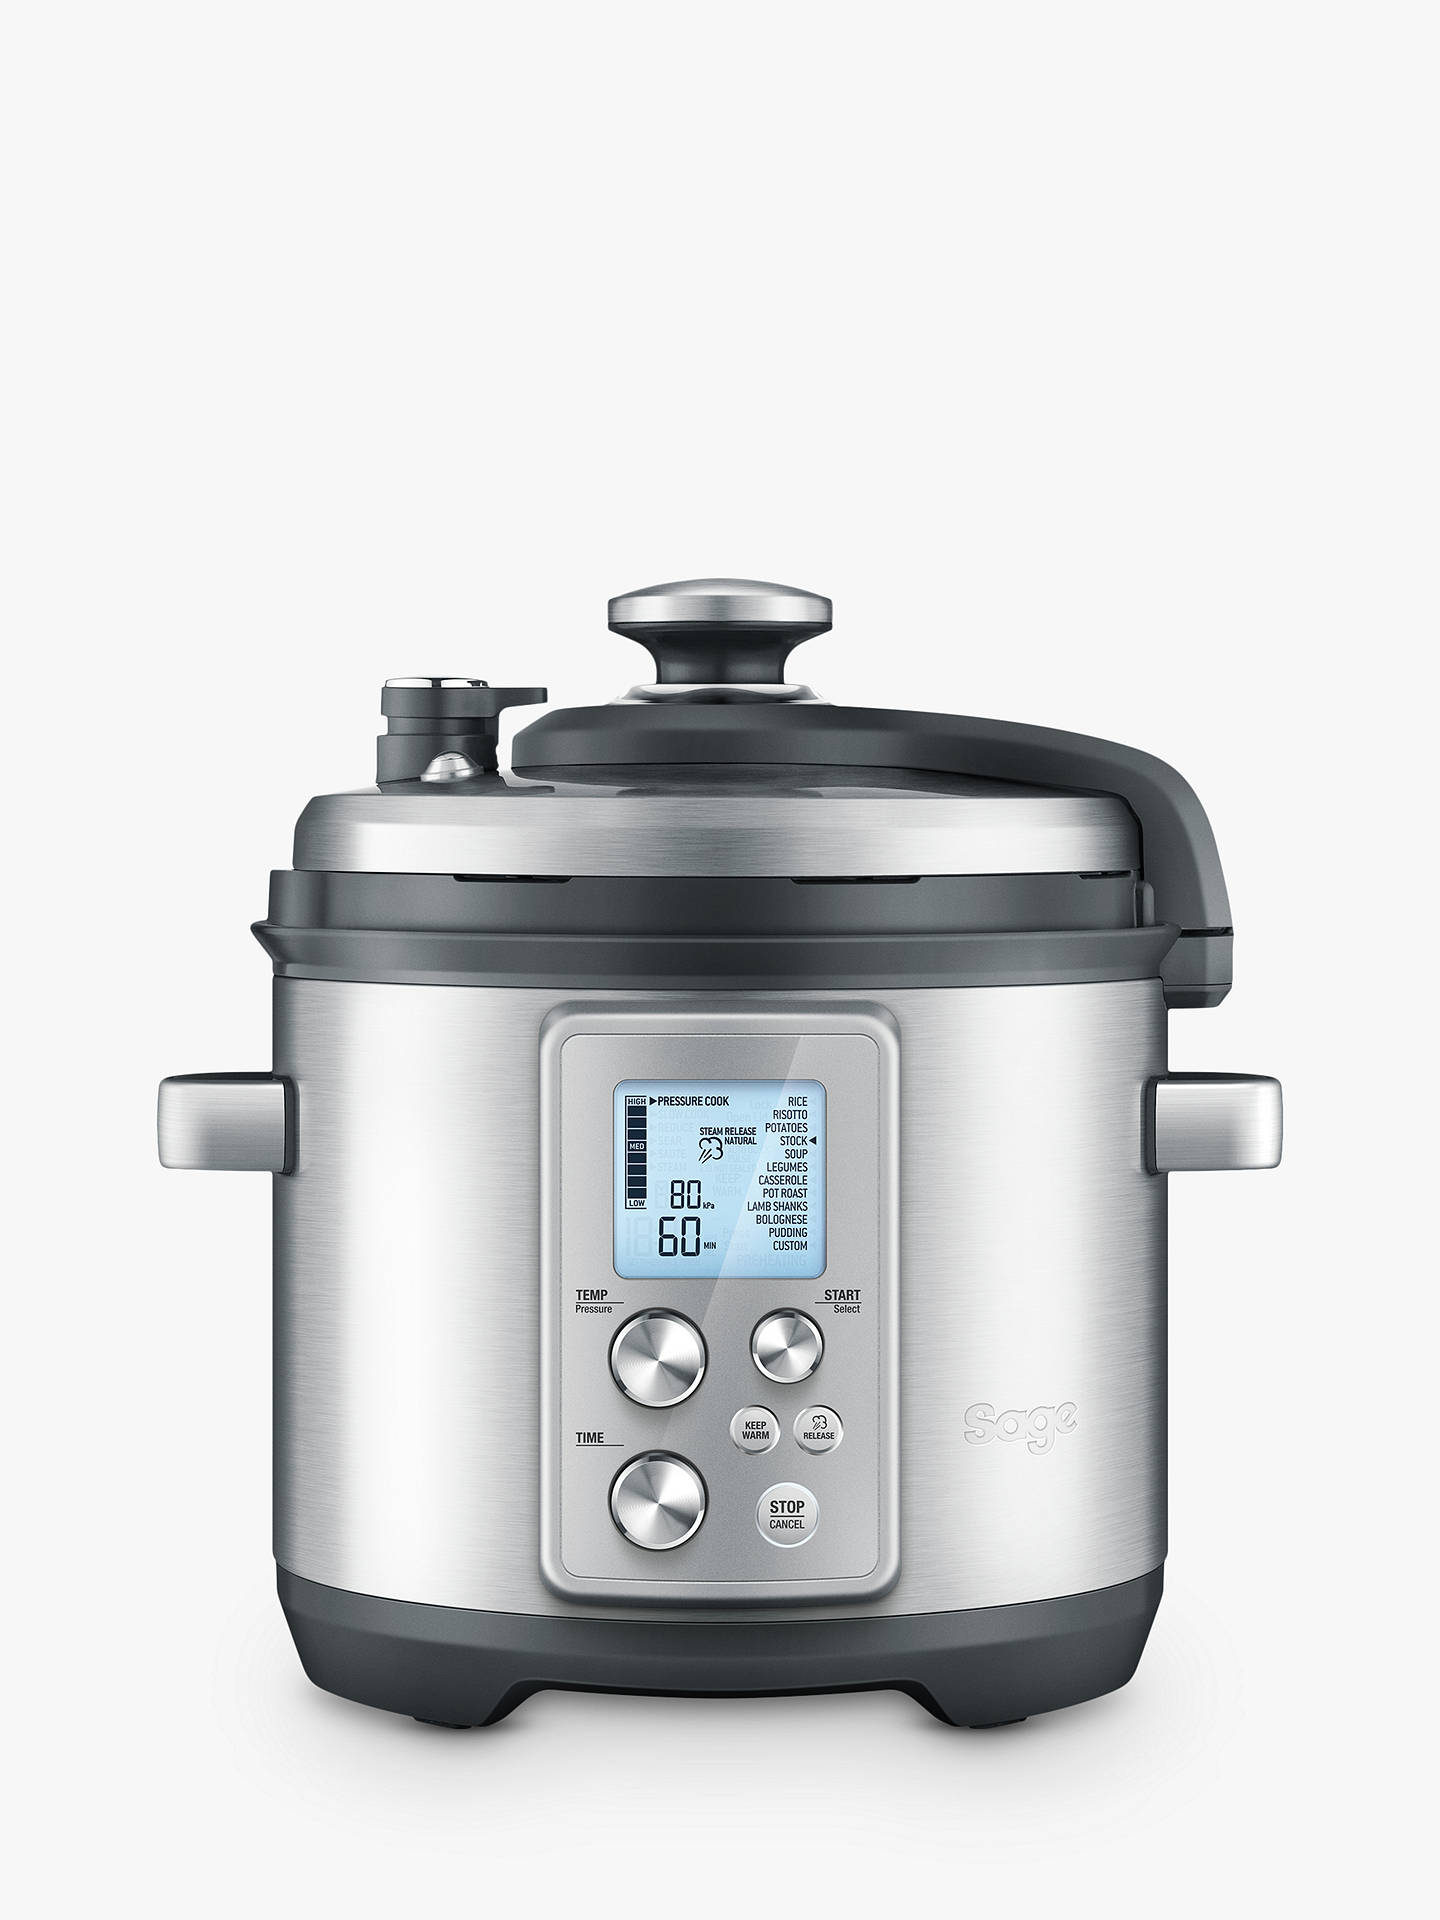 Sage Bpr700 Bss The Fast Slow Pro Slow Cooker, Brushed Metal by Sage